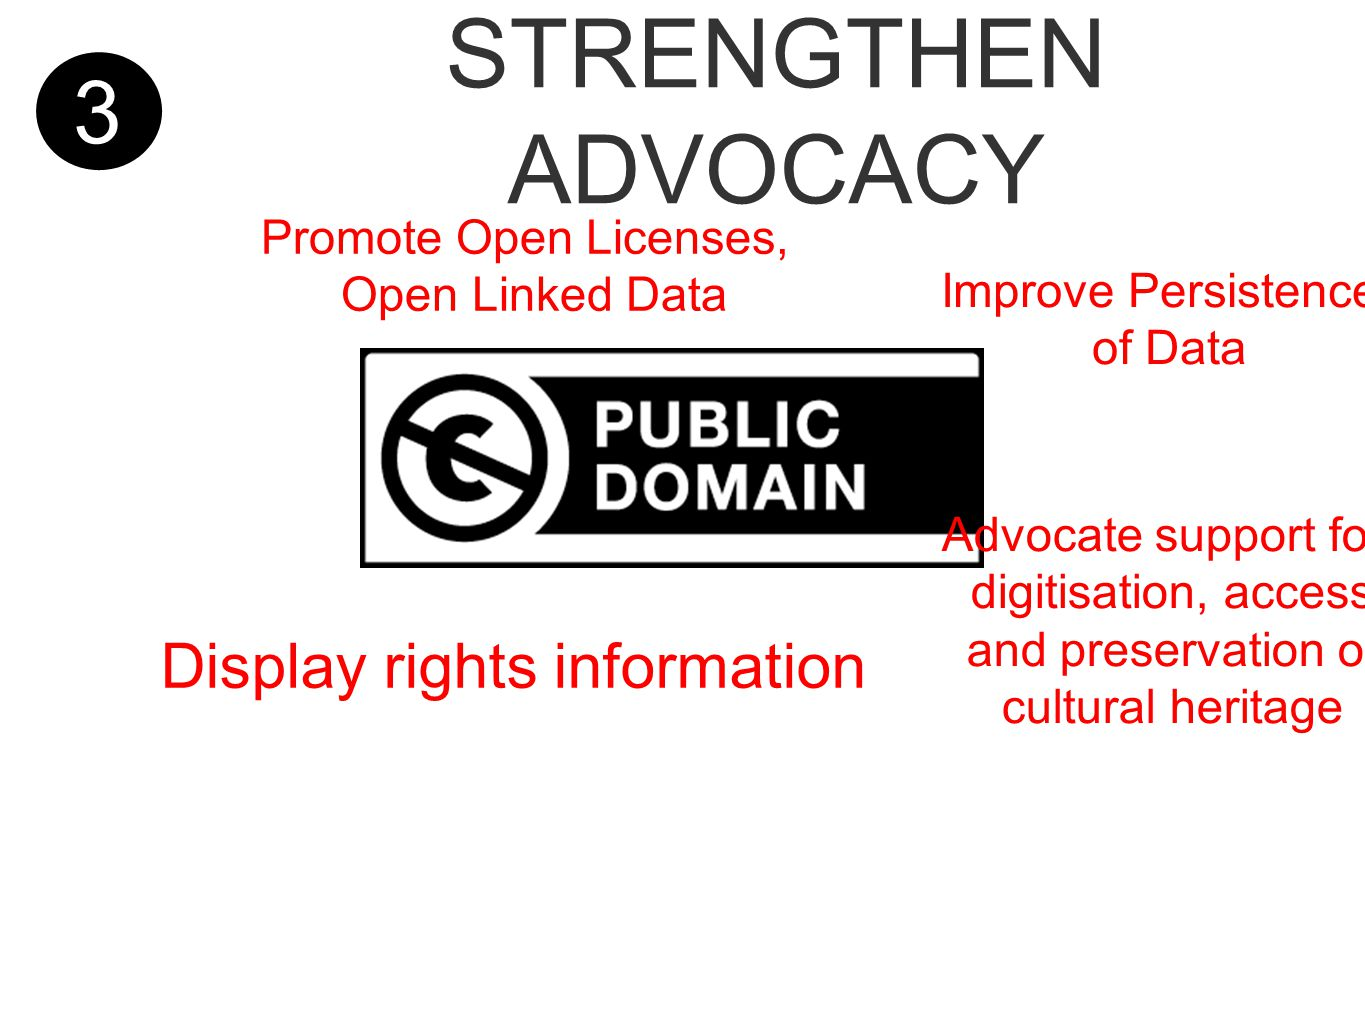 3 STRENGTHEN ADVOCACY Improve Persistence of Data Display rights information Promote Open Licenses, Open Linked Data Advocate support for digitisation, access and preservation of cultural heritage